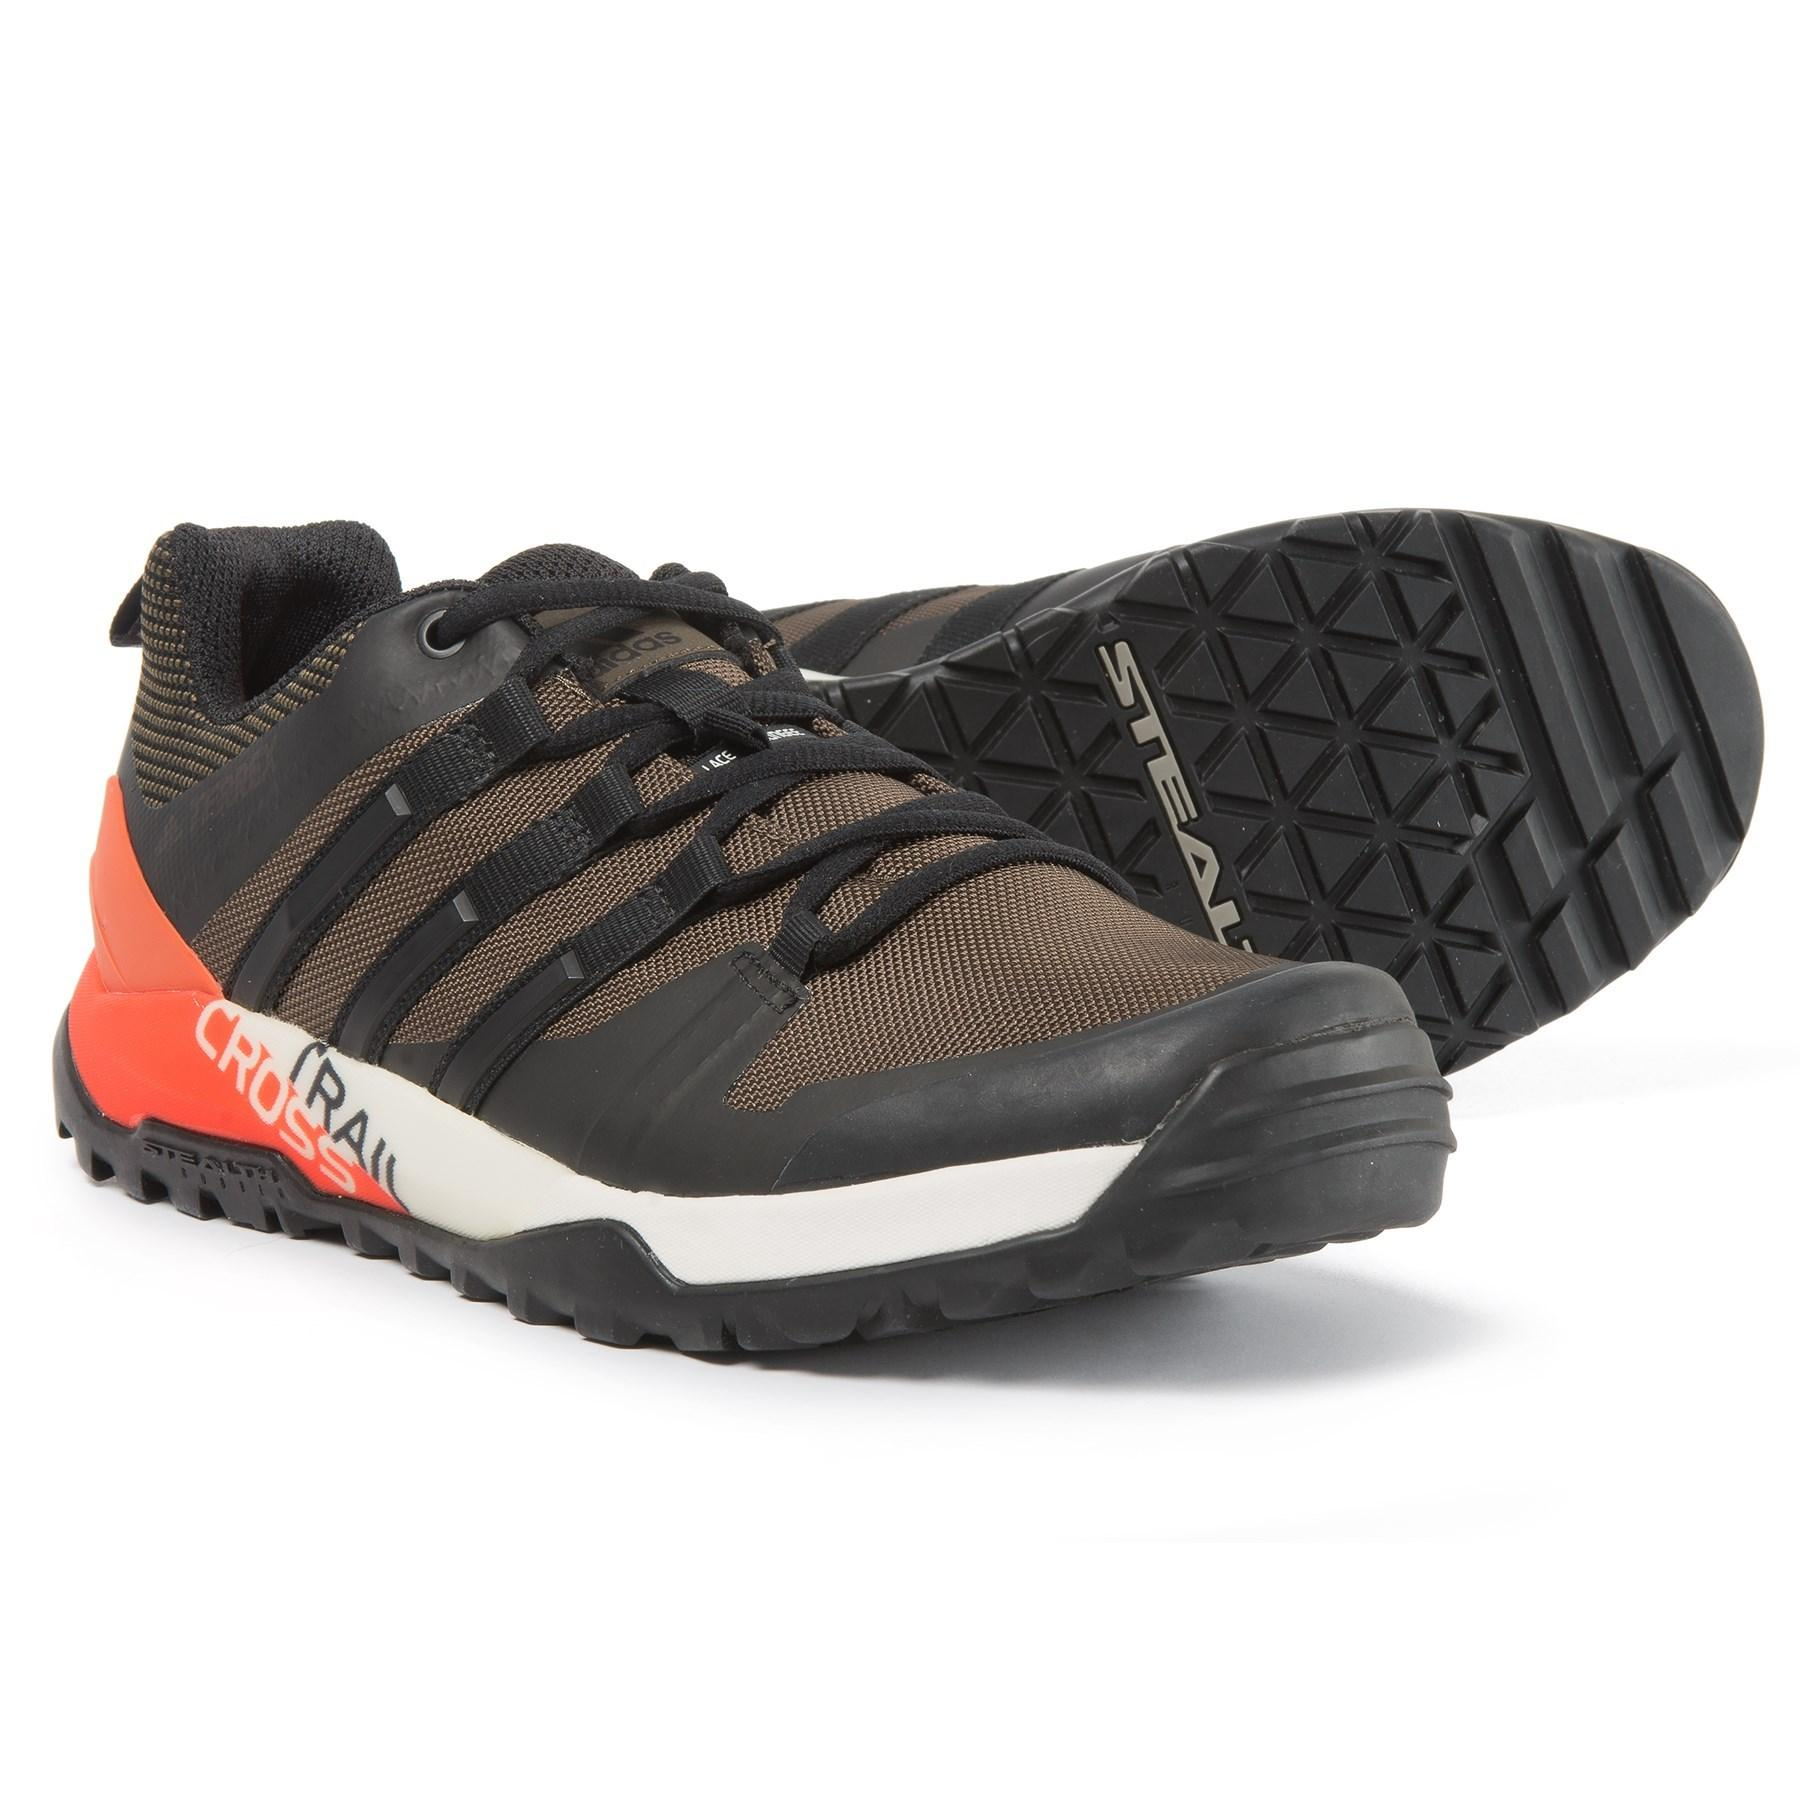 Adidas Terrex Trail Cross Sl Hiking Shoes For Men In